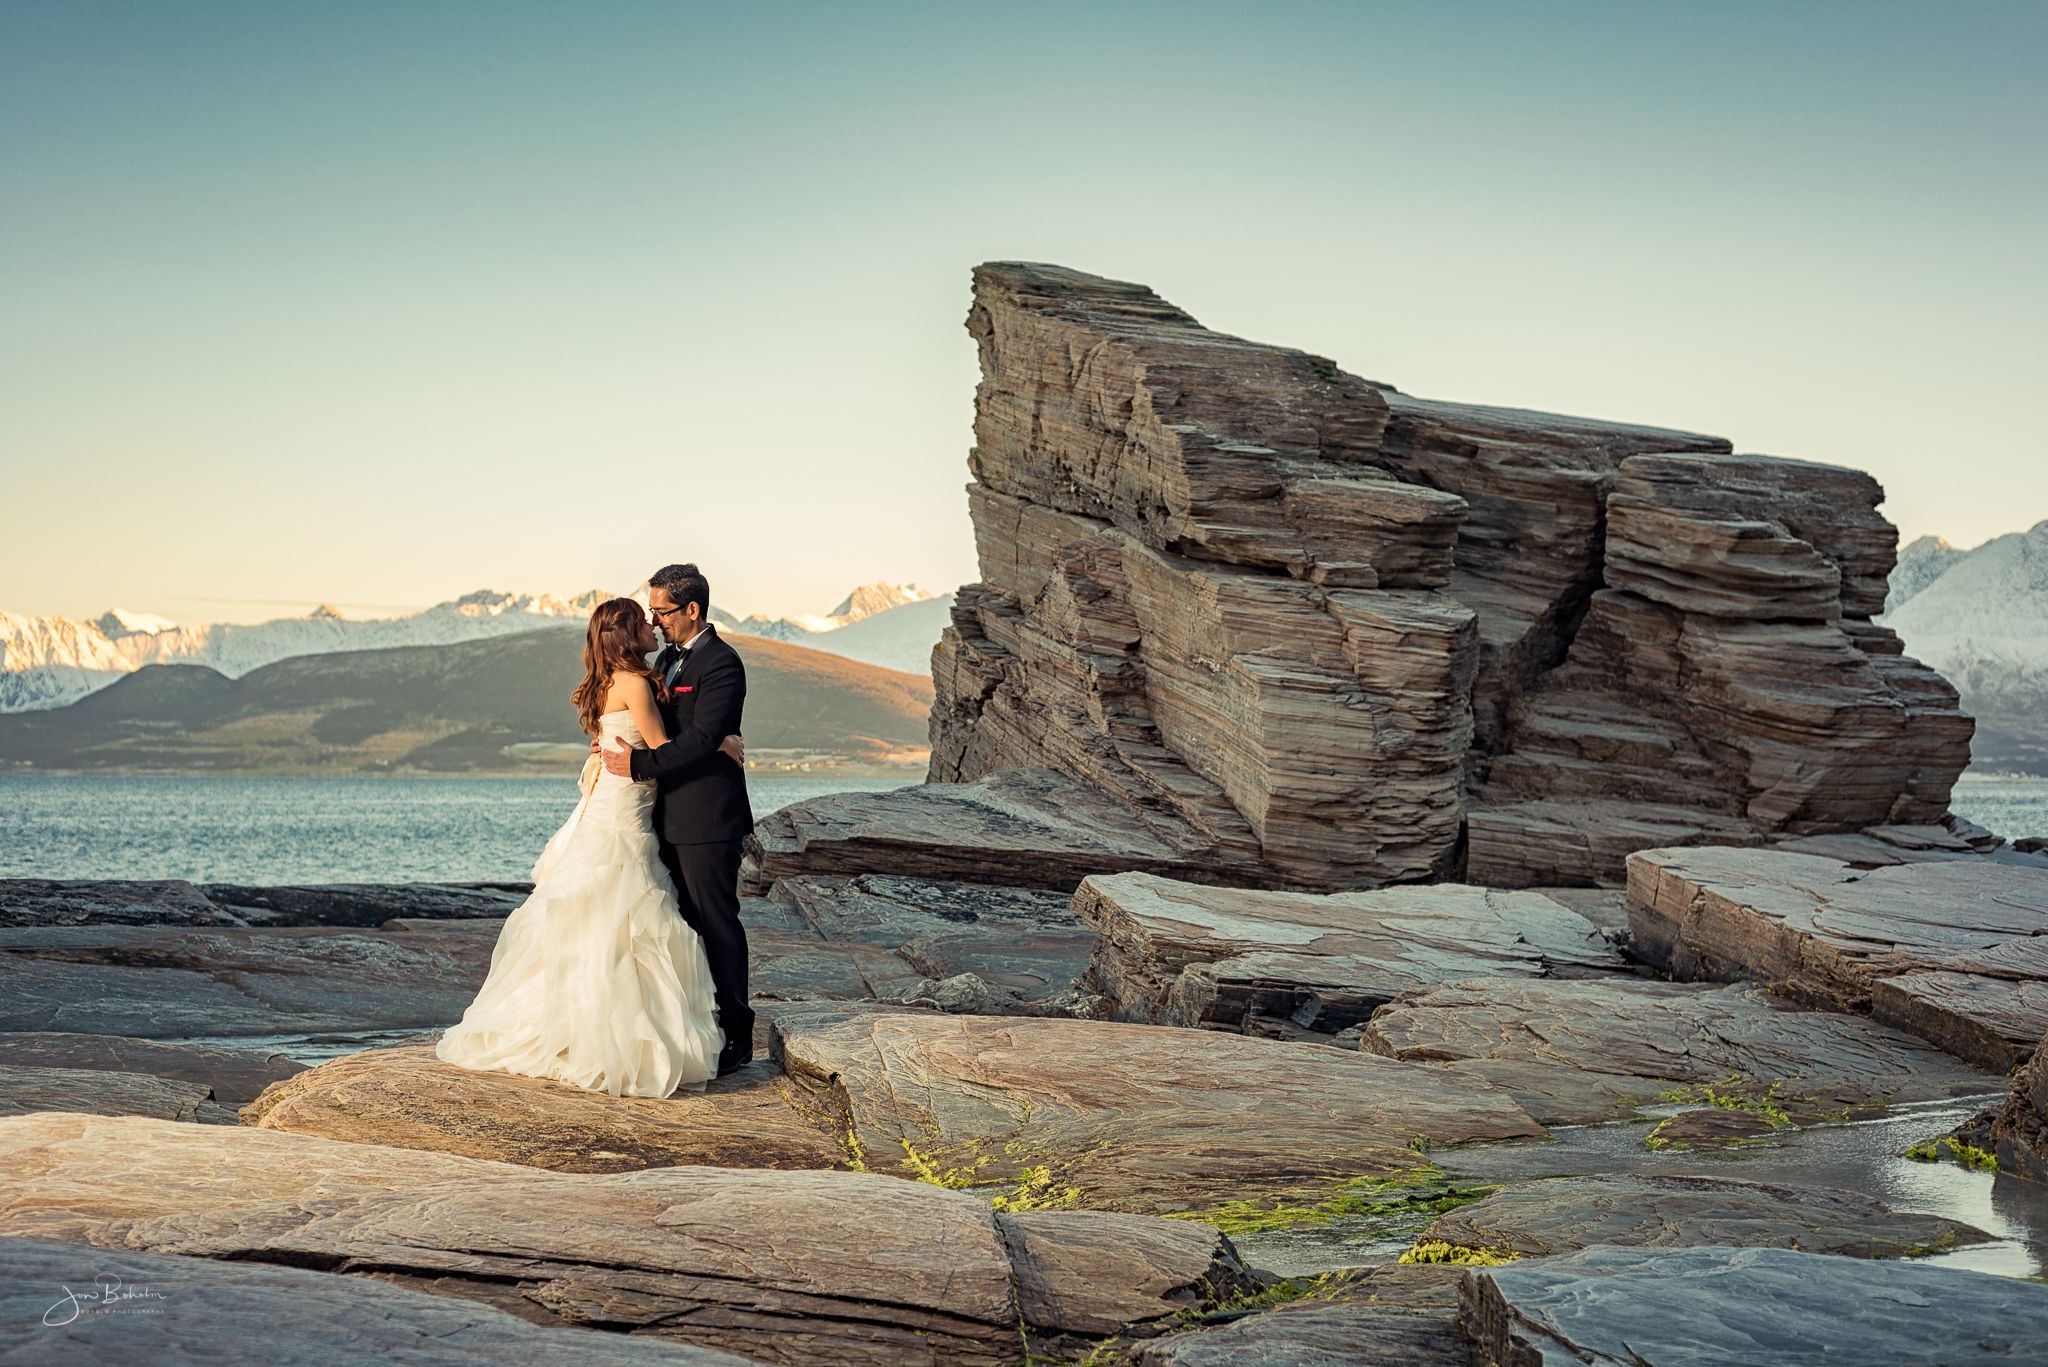 Oldervika is one of my favourite locations in Tromsø, and we were able to get some really nice shots there.